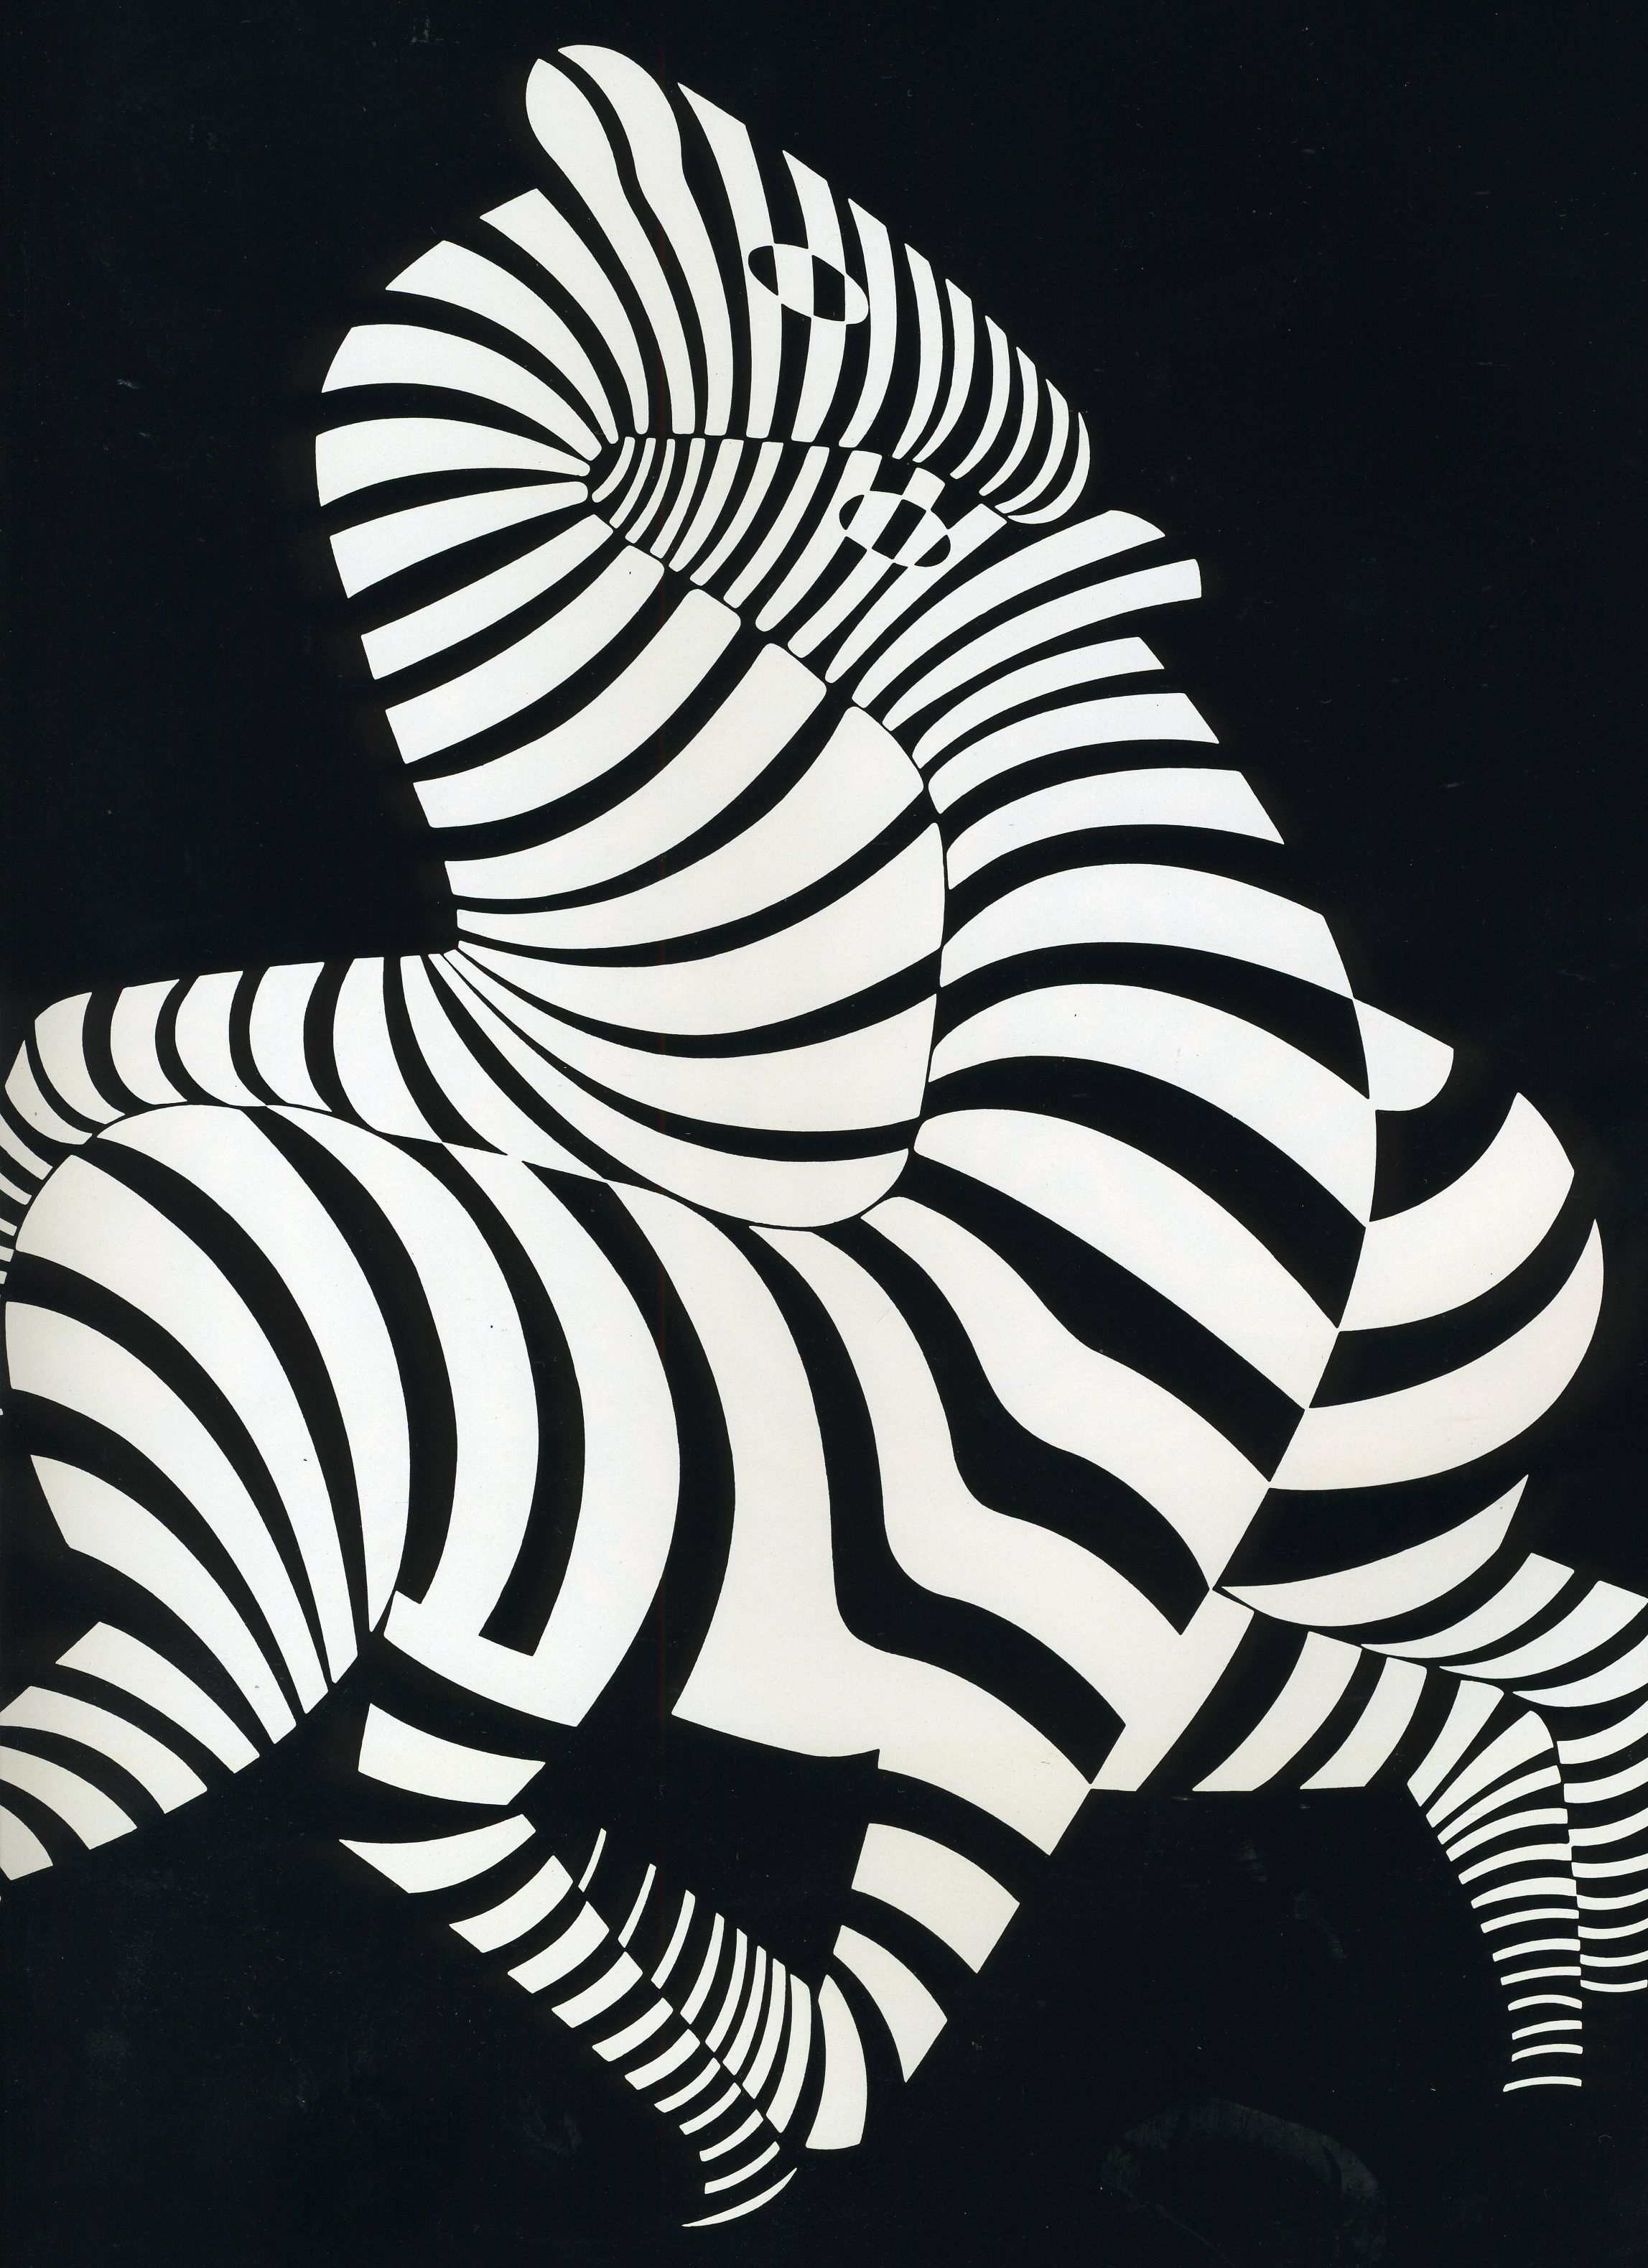 here is another example by artist victor vasarely on the difference between positive and negative space